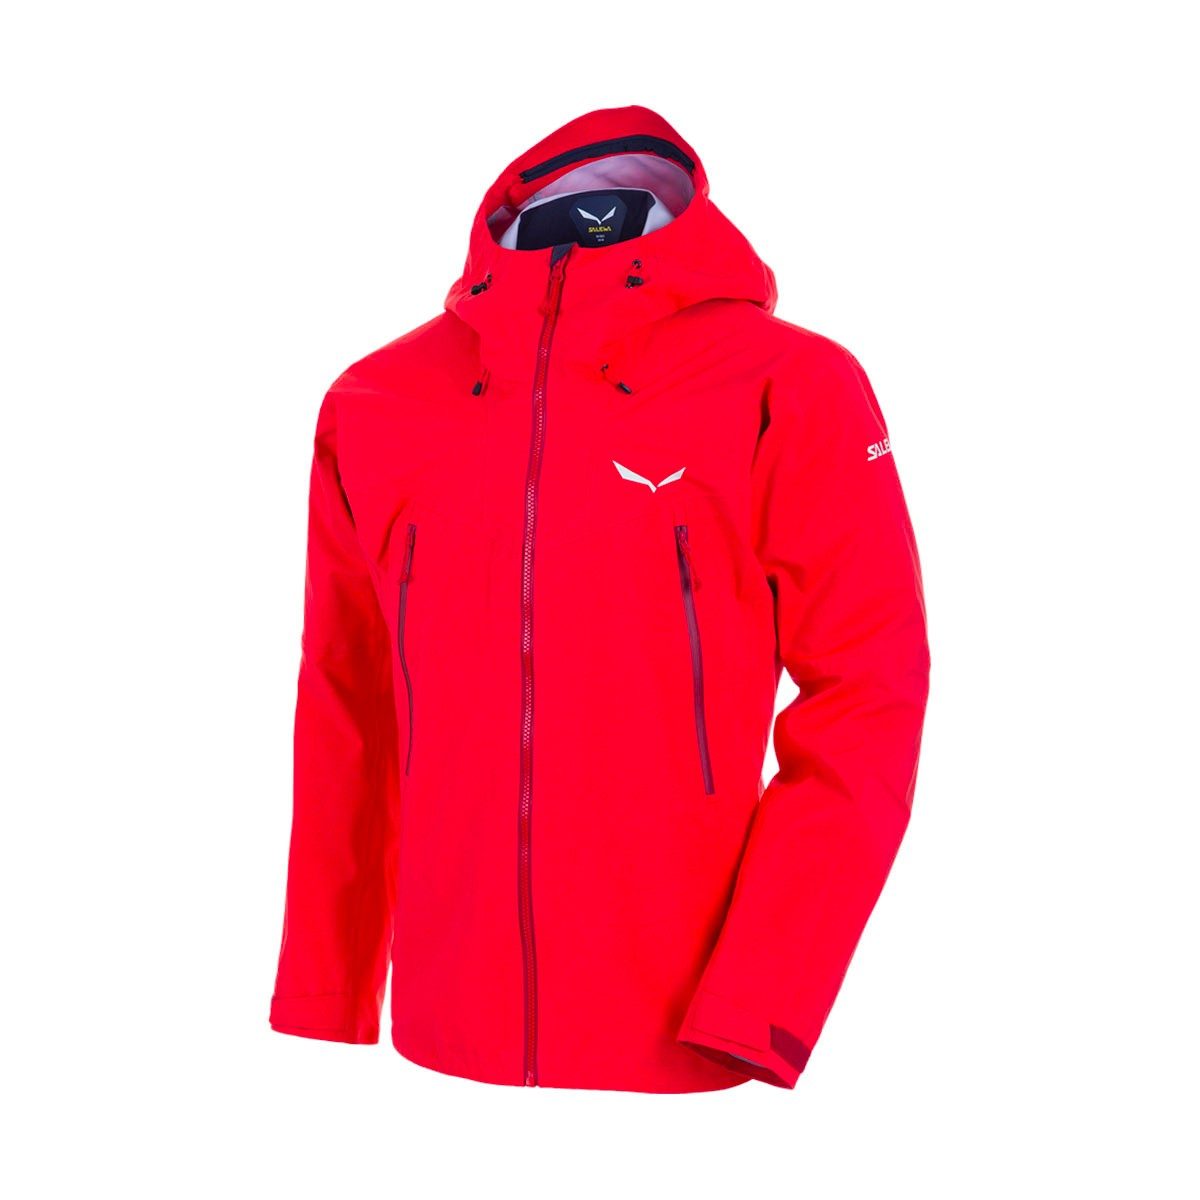 huge selection of d907e 1f59c Ortles Gore-Tex Stretch Jacket